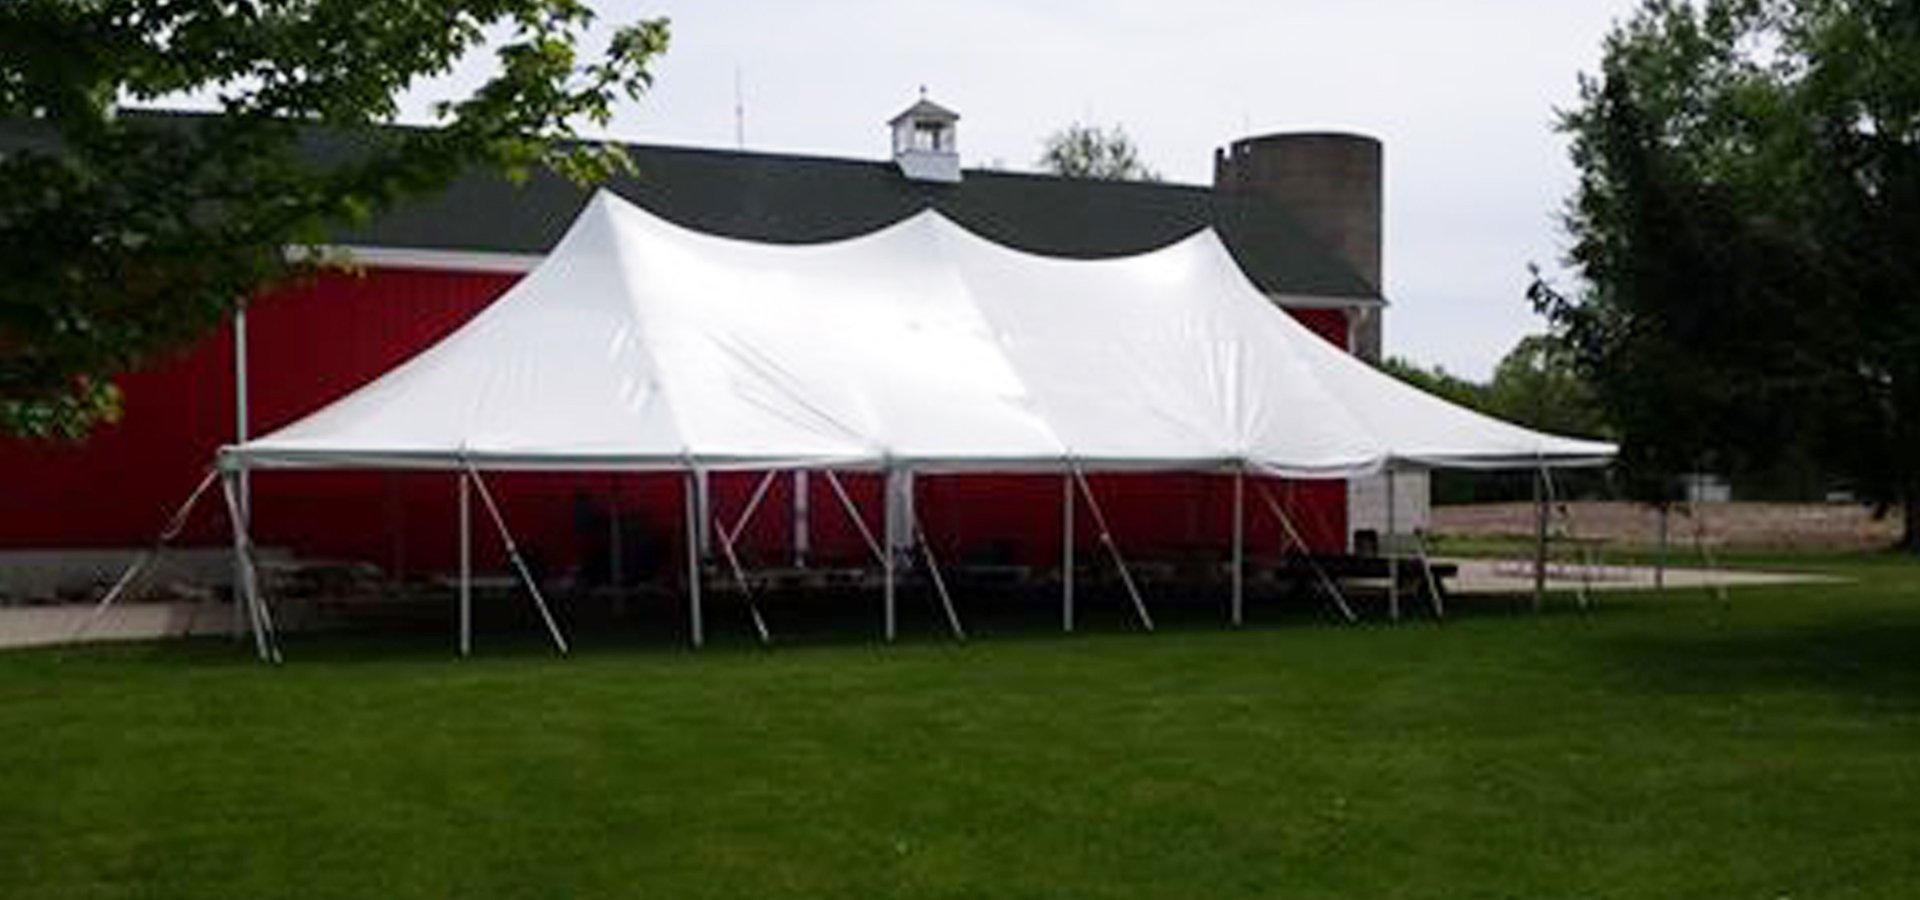 Tent And Chair Rentals Chair Rental Company Chair Rentals Kalamazoo Mi